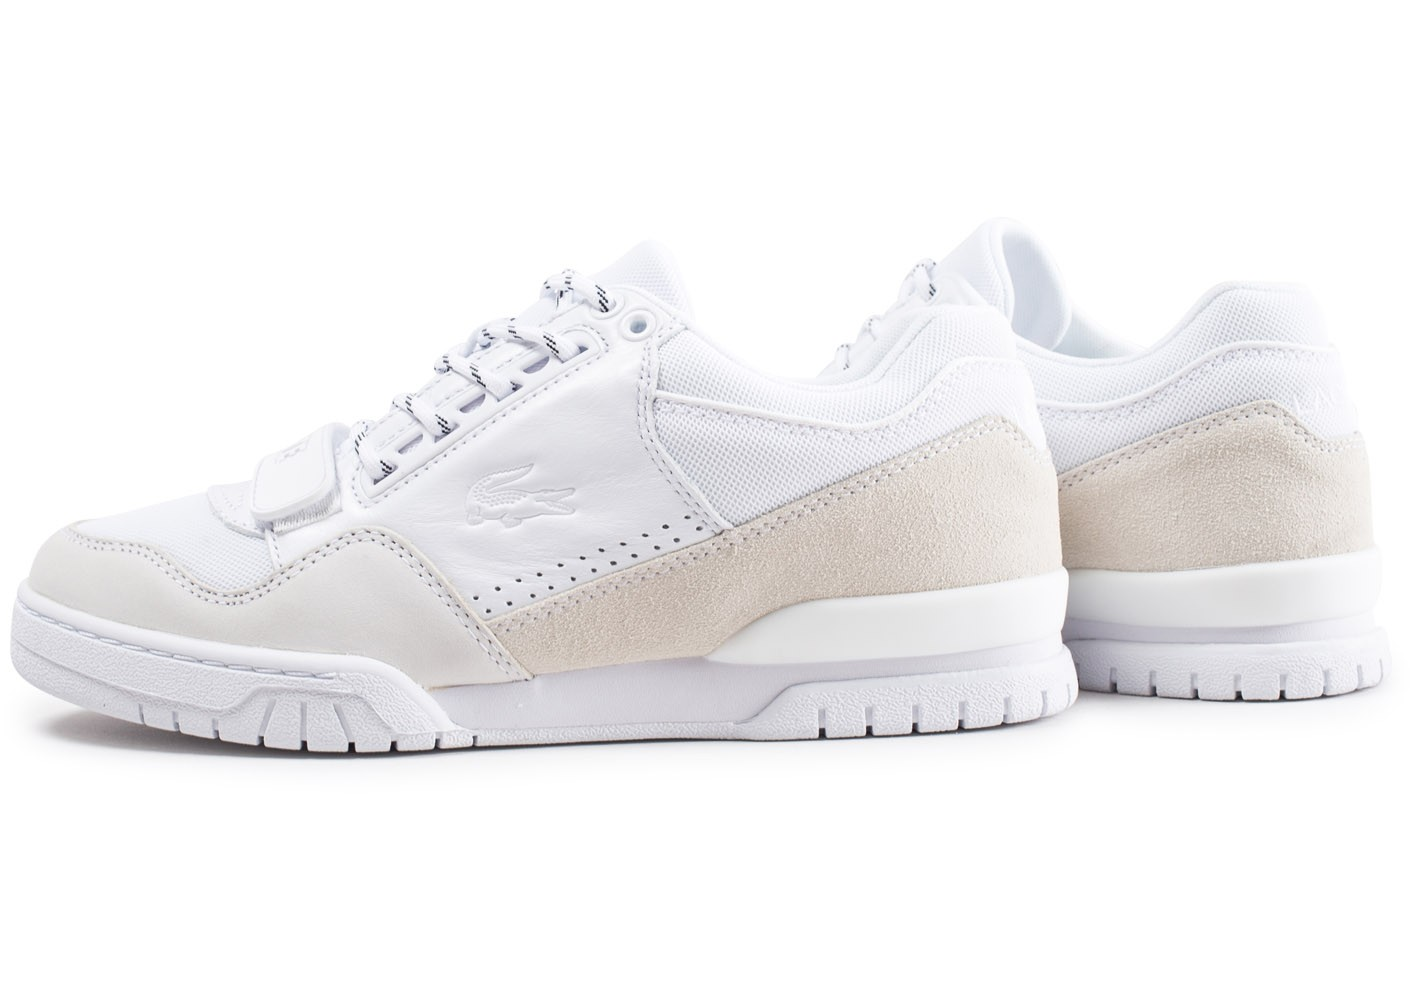 4ed86a1f593 Missouri Chausport Baskets Lacoste Homme Blanche Chaussures nx6HwgqYa